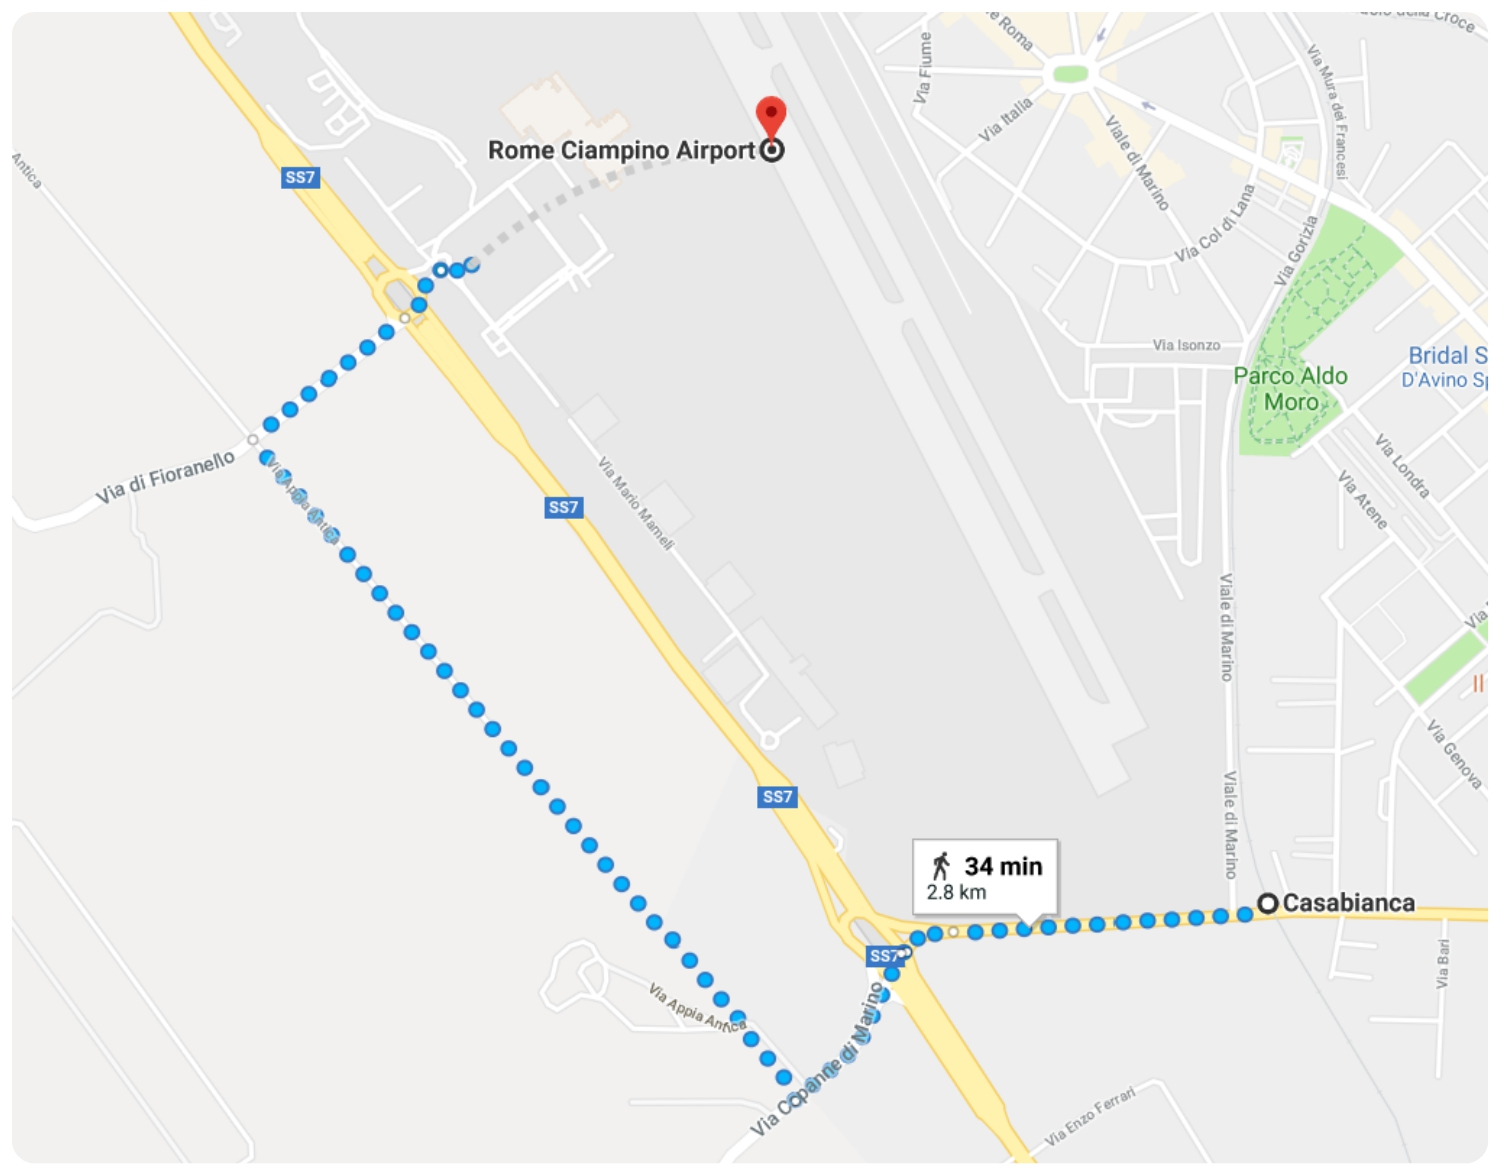 The walk from Casabianca Train Station to Rome Ciampino Airport (CIA) is just 1.7 miles.